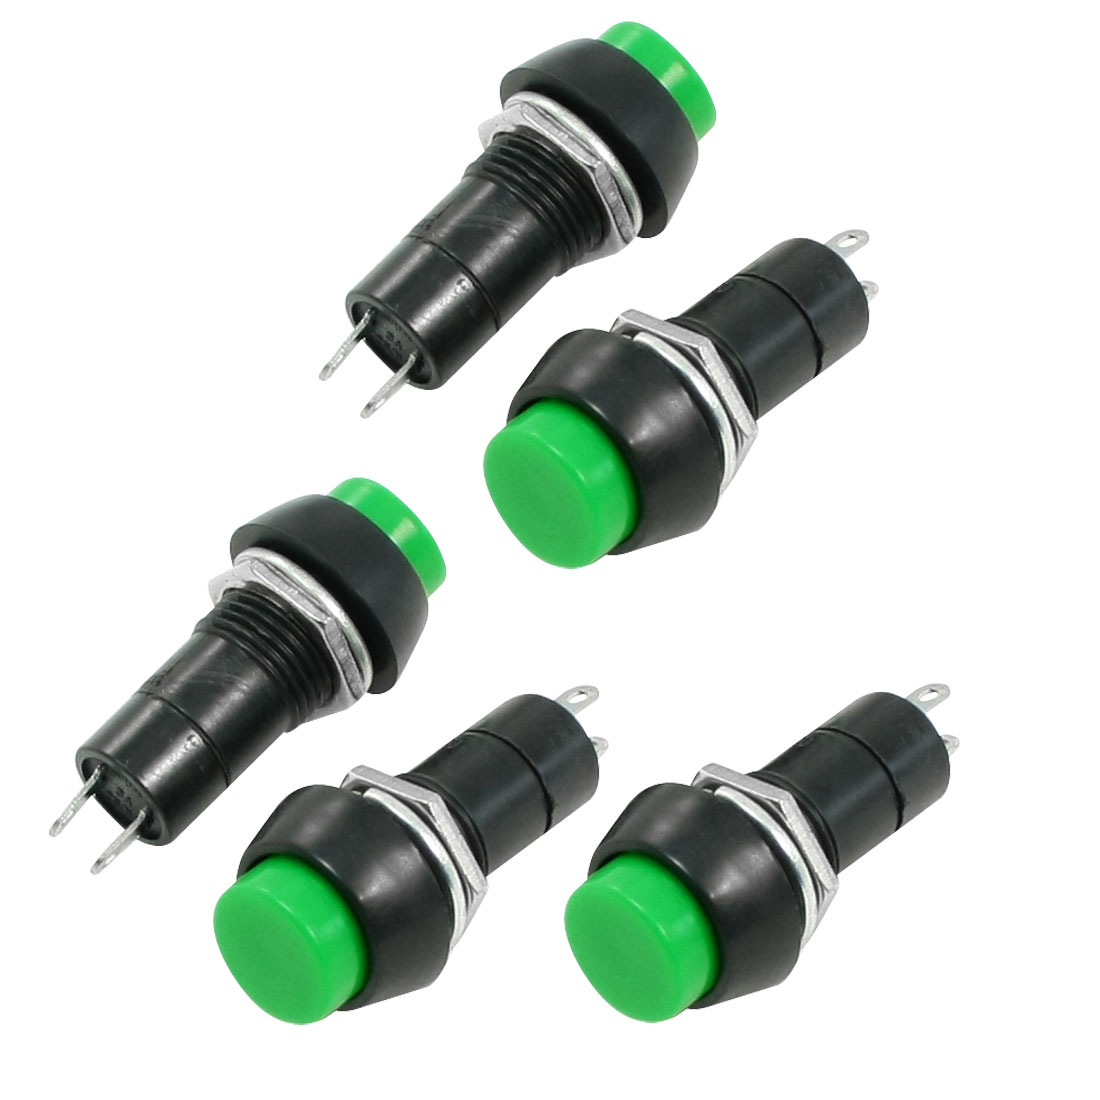 3A 250V AC Green Cap SPST OFF-(ON) Momentary Push Button Switch 5 Pcs